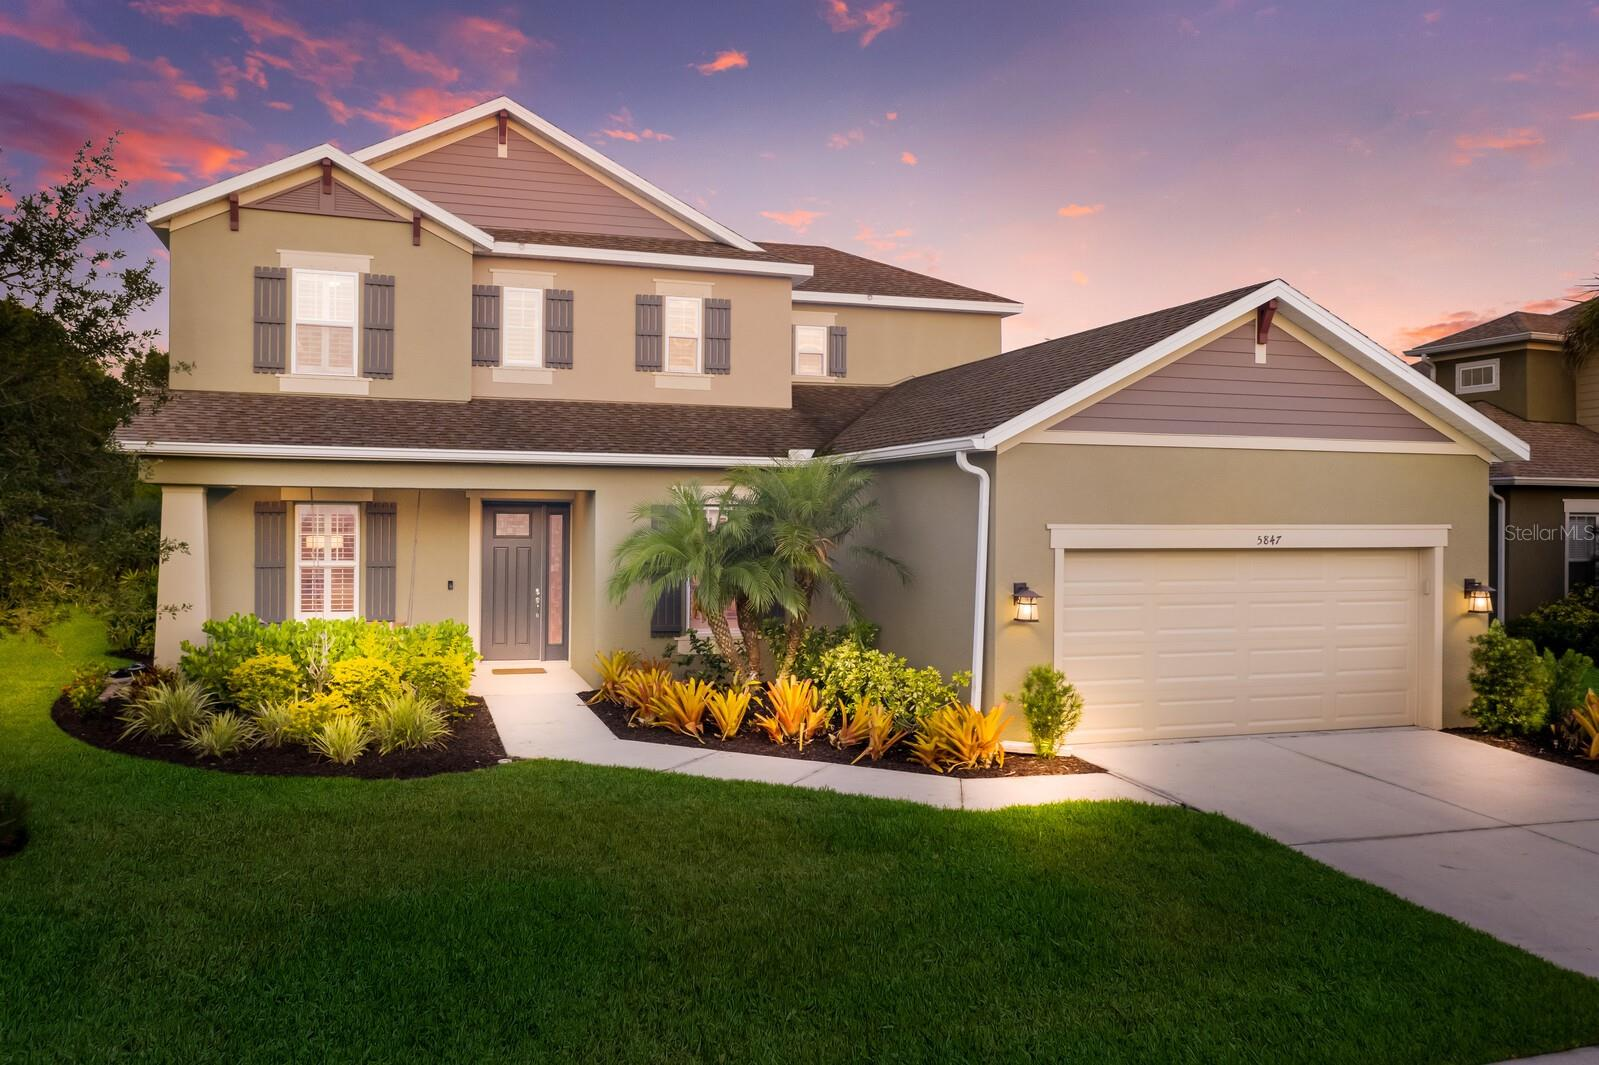 Primary photo of recently sold MLS# A4502368